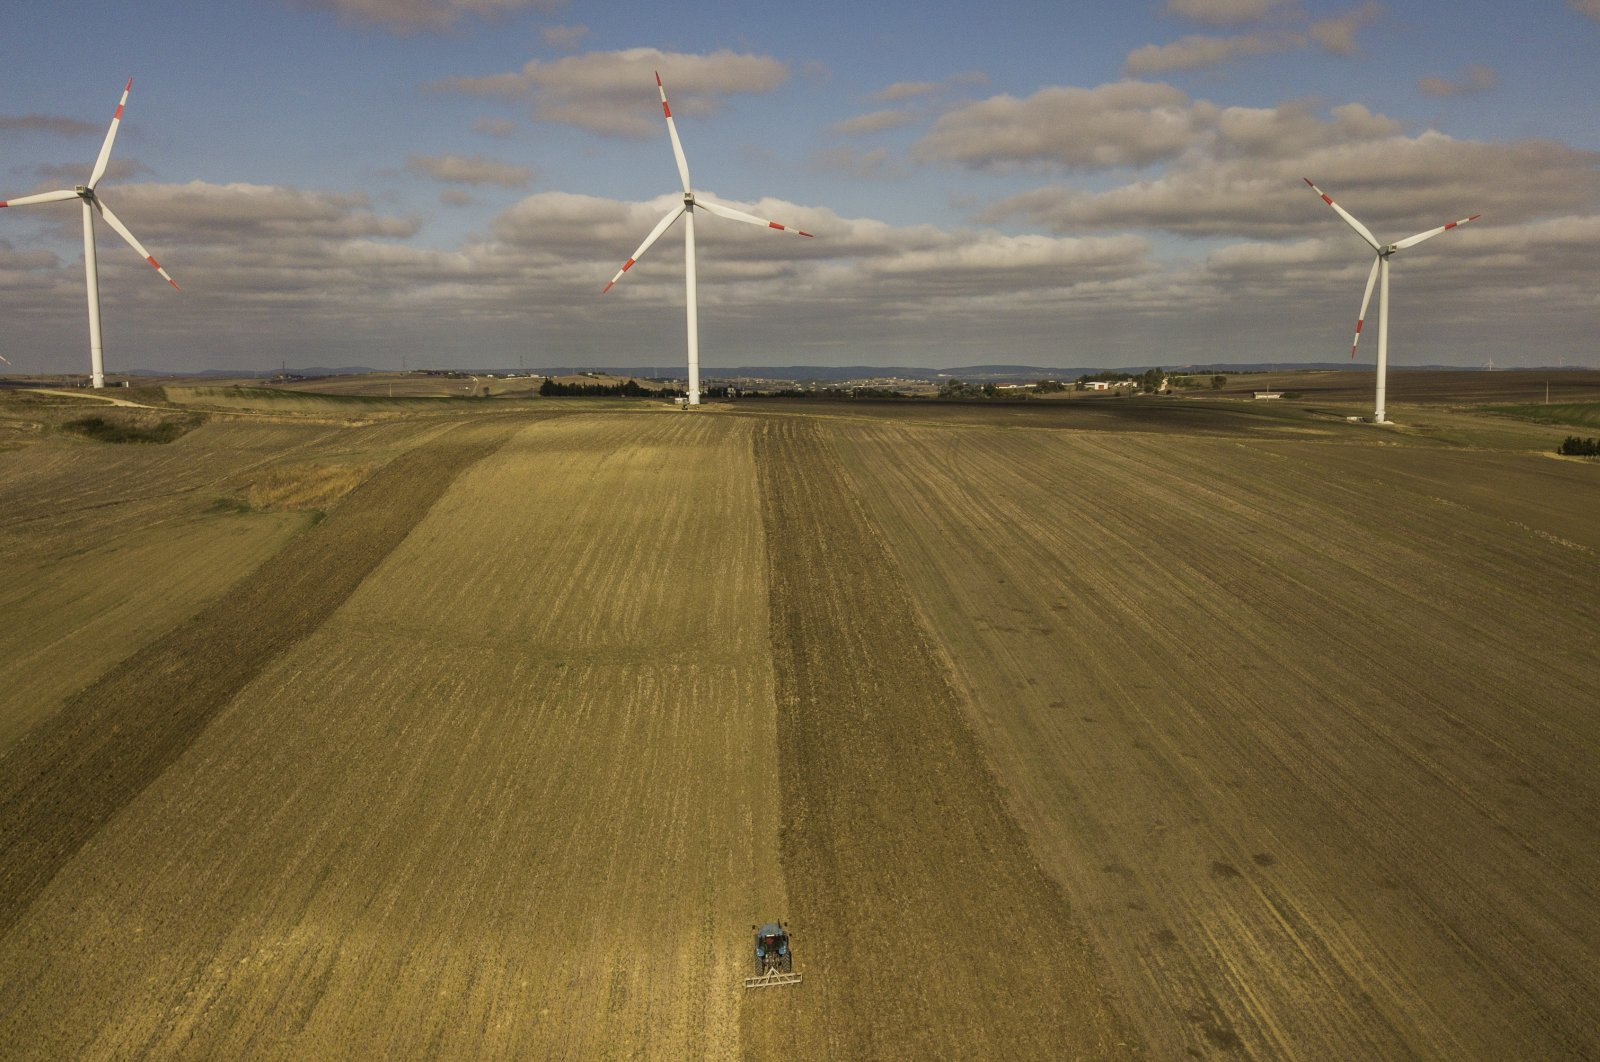 An aerial view taken by a drone shows wind turbines in the countryside of Istanbul, Turkey, Oct. 22, 2020. (EPA Photo)